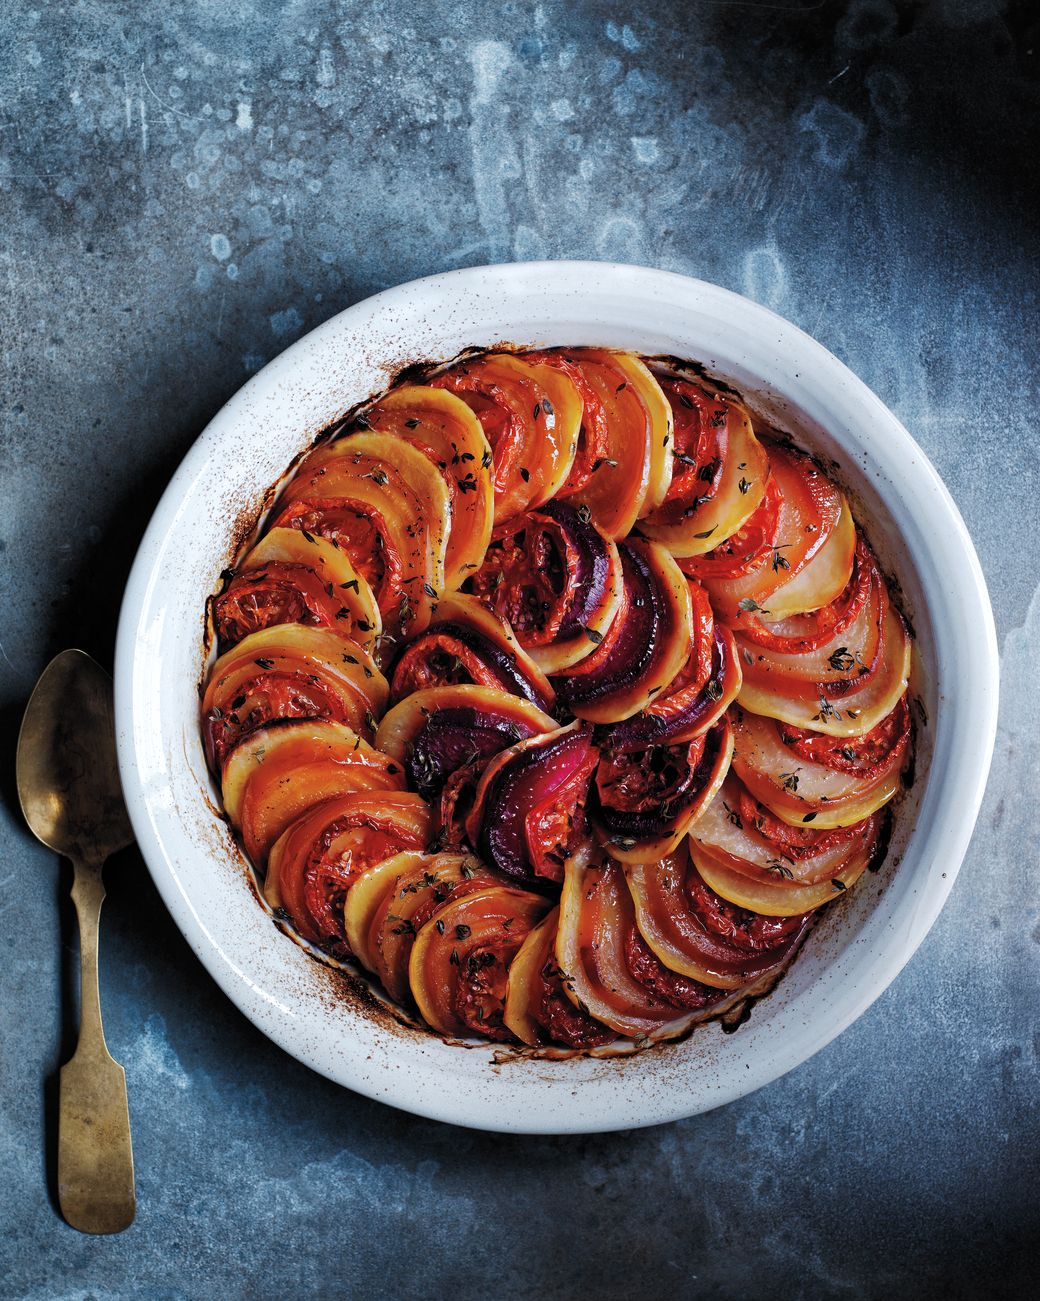 Autumn Tian | Martha Stewart Living - Time to show off those knife skills! Even slices of beets, potatoes, and tomatoes are key to this colorful side dish.